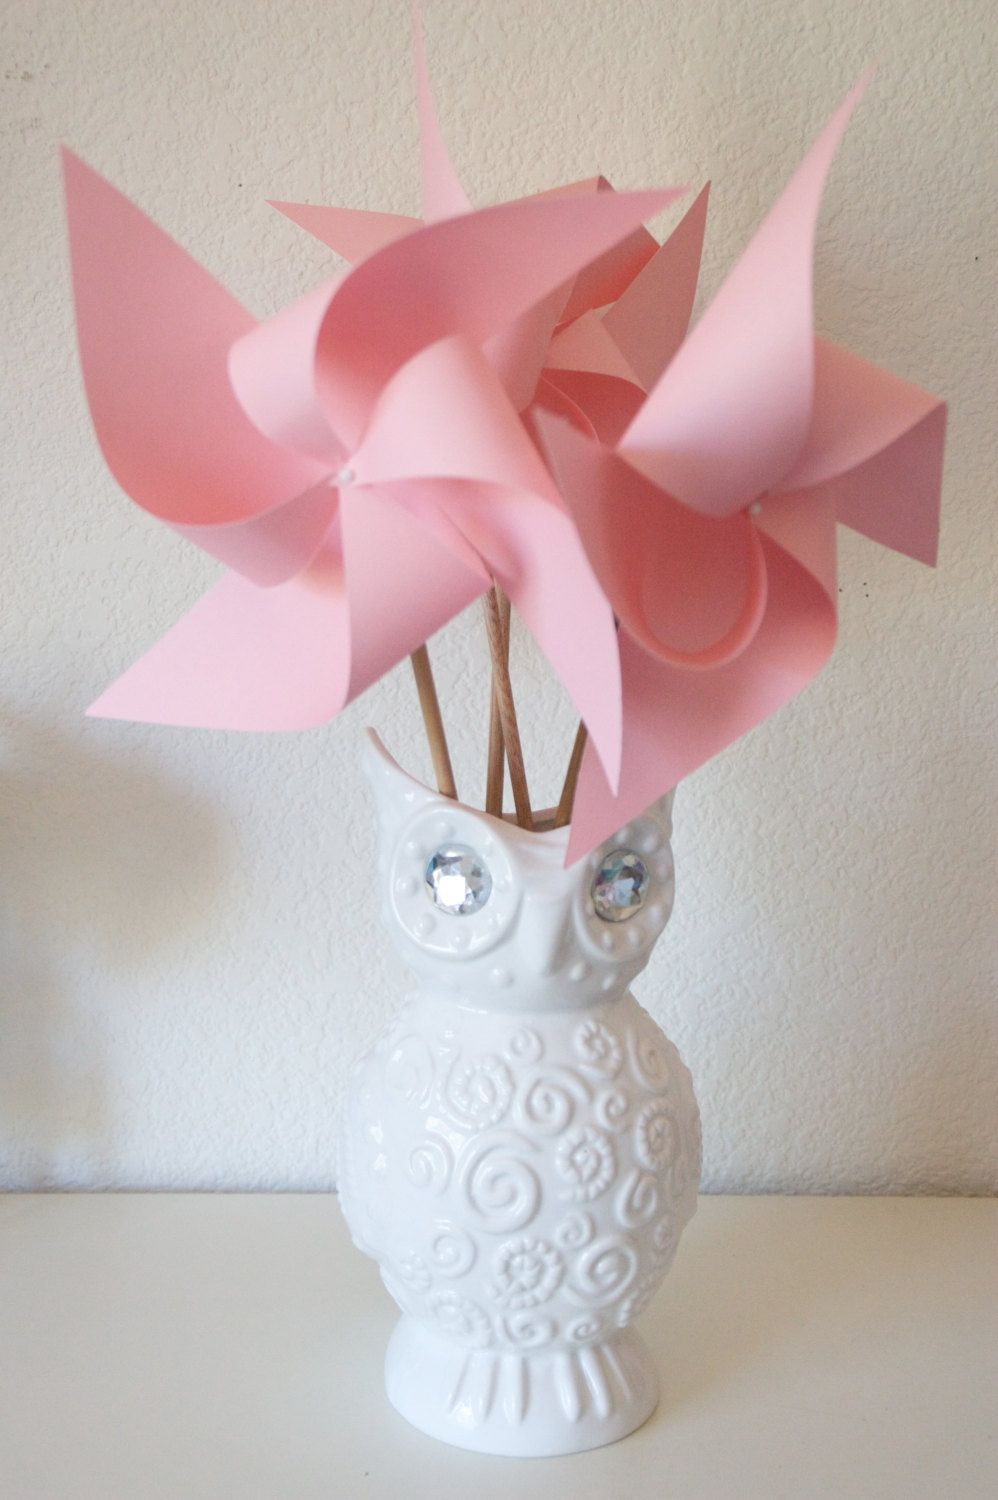 Adorable Pinwheels! Wedding Favors Decor Birthday Favors - 6 Large ...